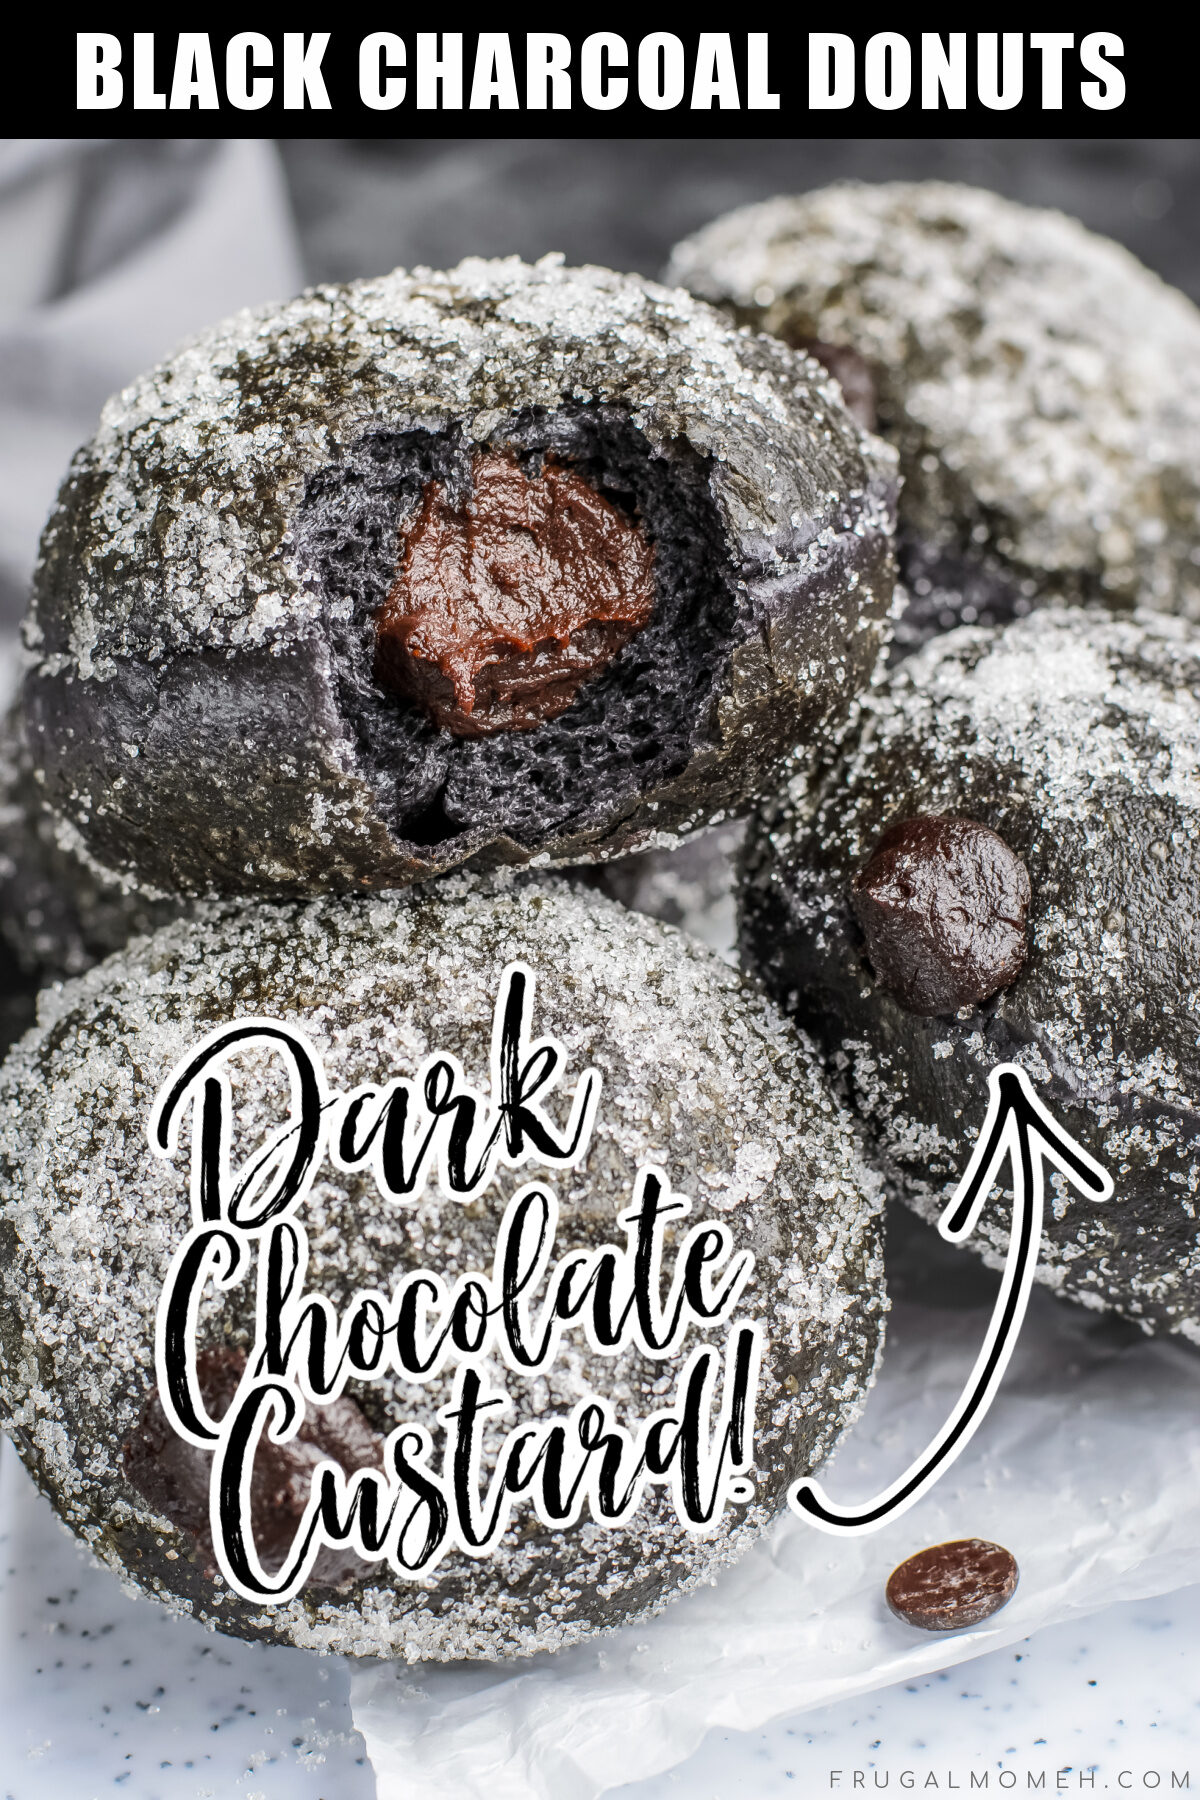 Light and crisp, these Black Charcoal Donuts with Dark Chocolate Custard are made with charcoal and filled with rich dark chocolate custard.